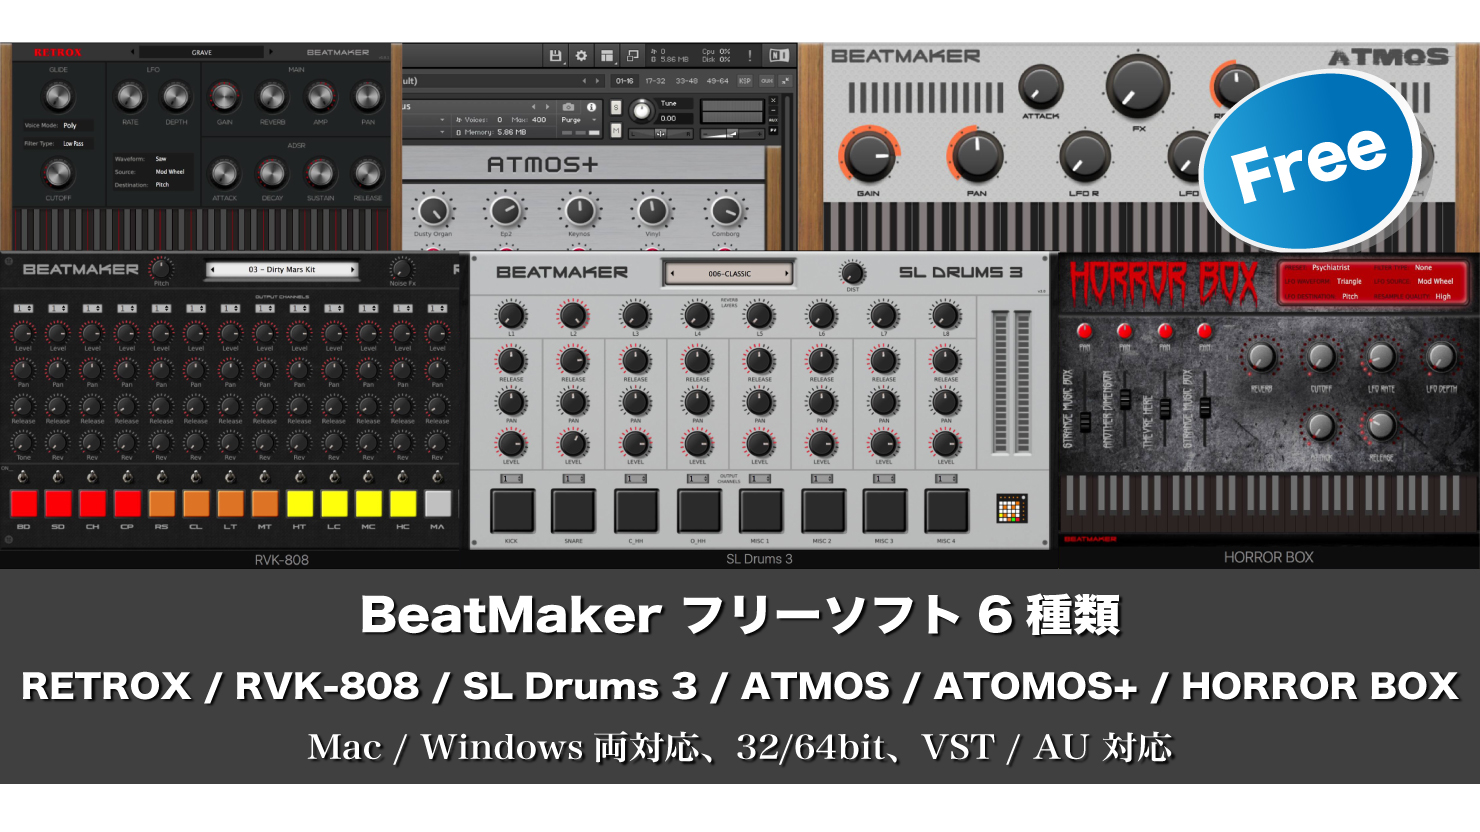 【無料】BeatMaker フリーソフト6種類!RETROX / RVK-808 / SL Drums 3 / ATMOS / ATOMOS+ / HORROR BOX